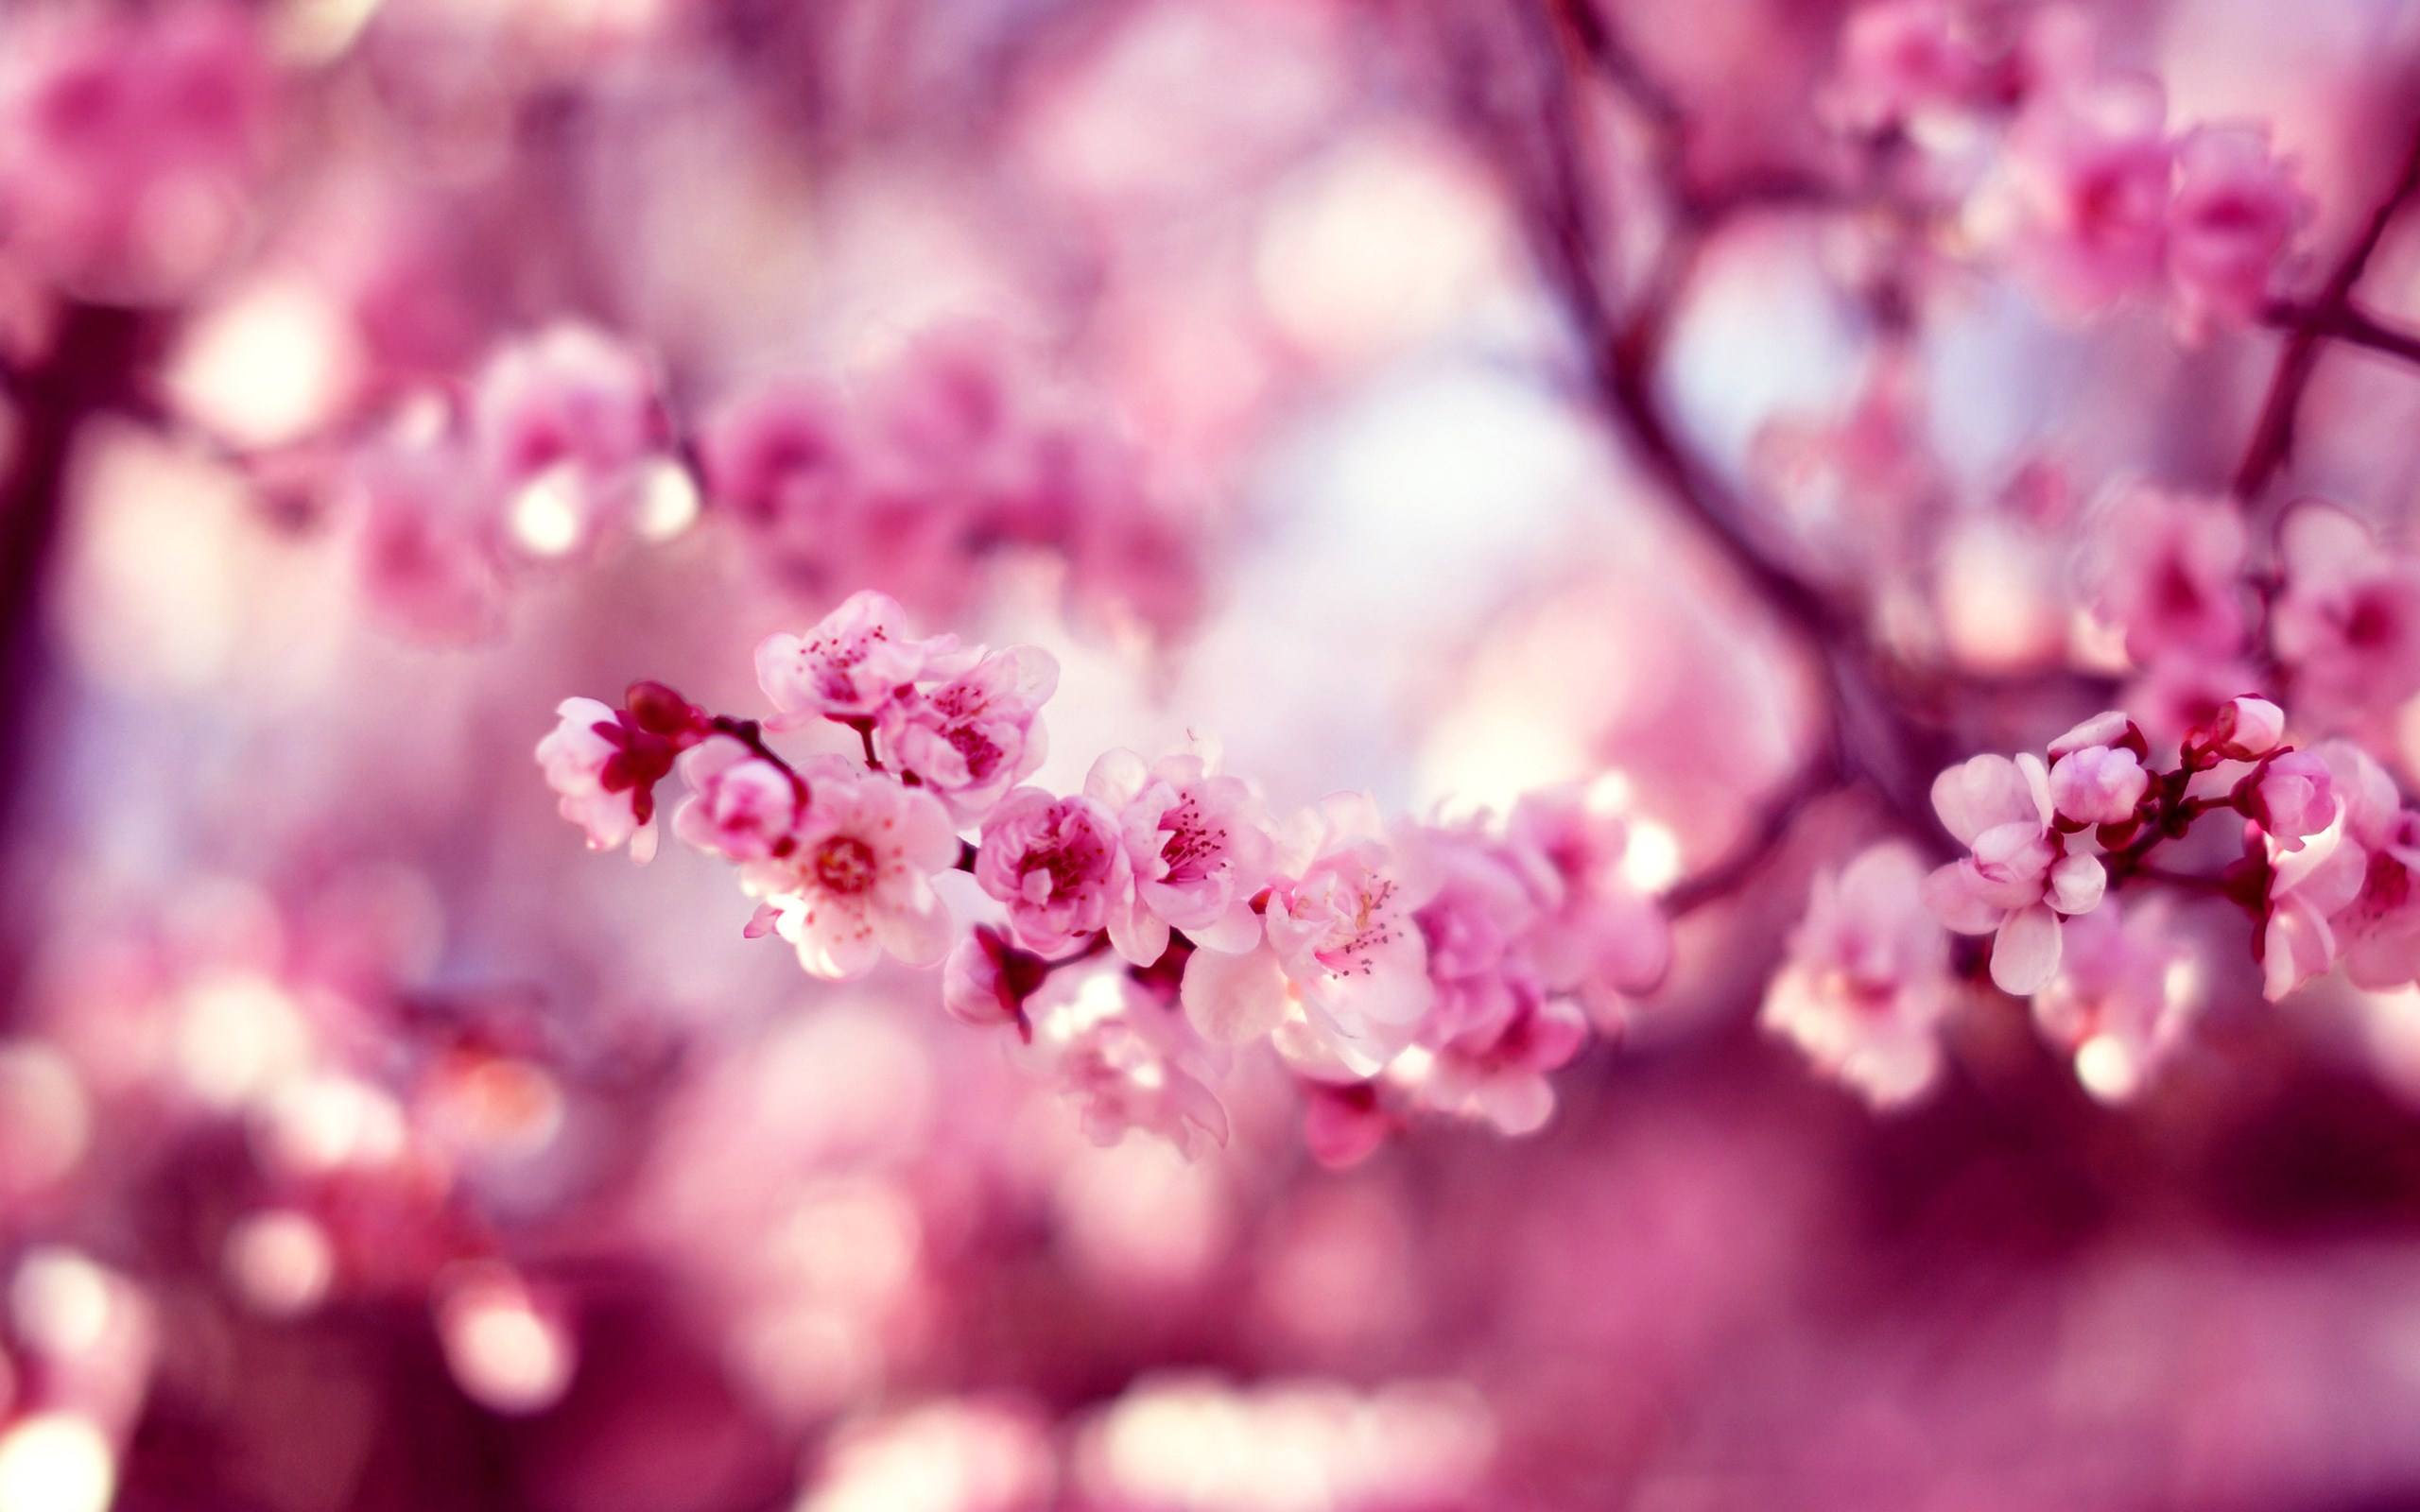 Spring cherry blossom hd wallpaper 2560x1600 31845 Cherry blossom pictures